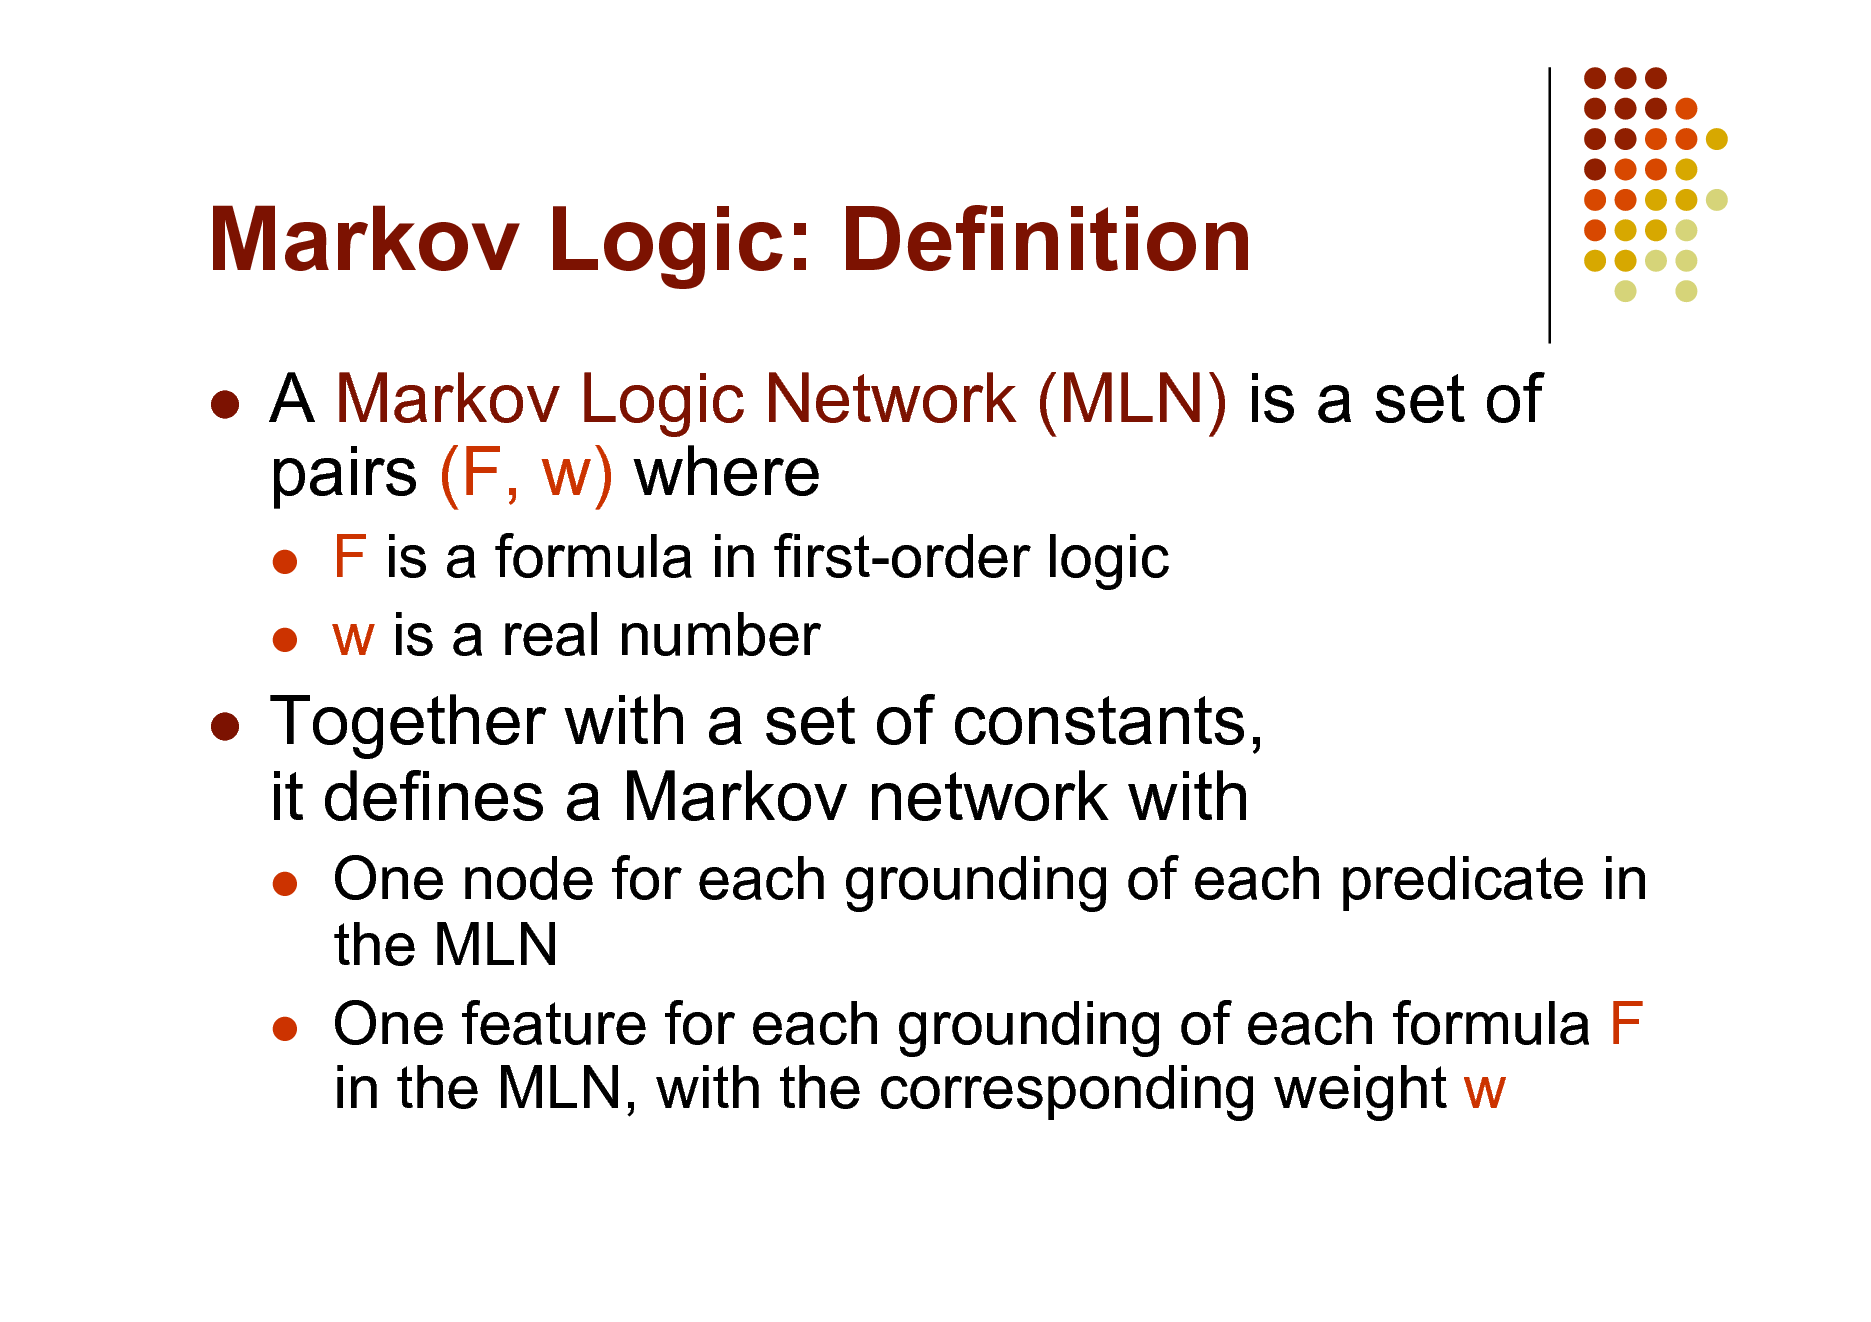 Slide: Markov Logic: Definition   A Markov Logic Network (MLN) is a set of pairs (F, w) where    F is a formula in first-order logic w is a real number    Together with a set of constants, it defines a Markov network with    One node for each grounding of each predicate in the MLN One feature for each grounding of each formula F in the MLN, with the corresponding weight w